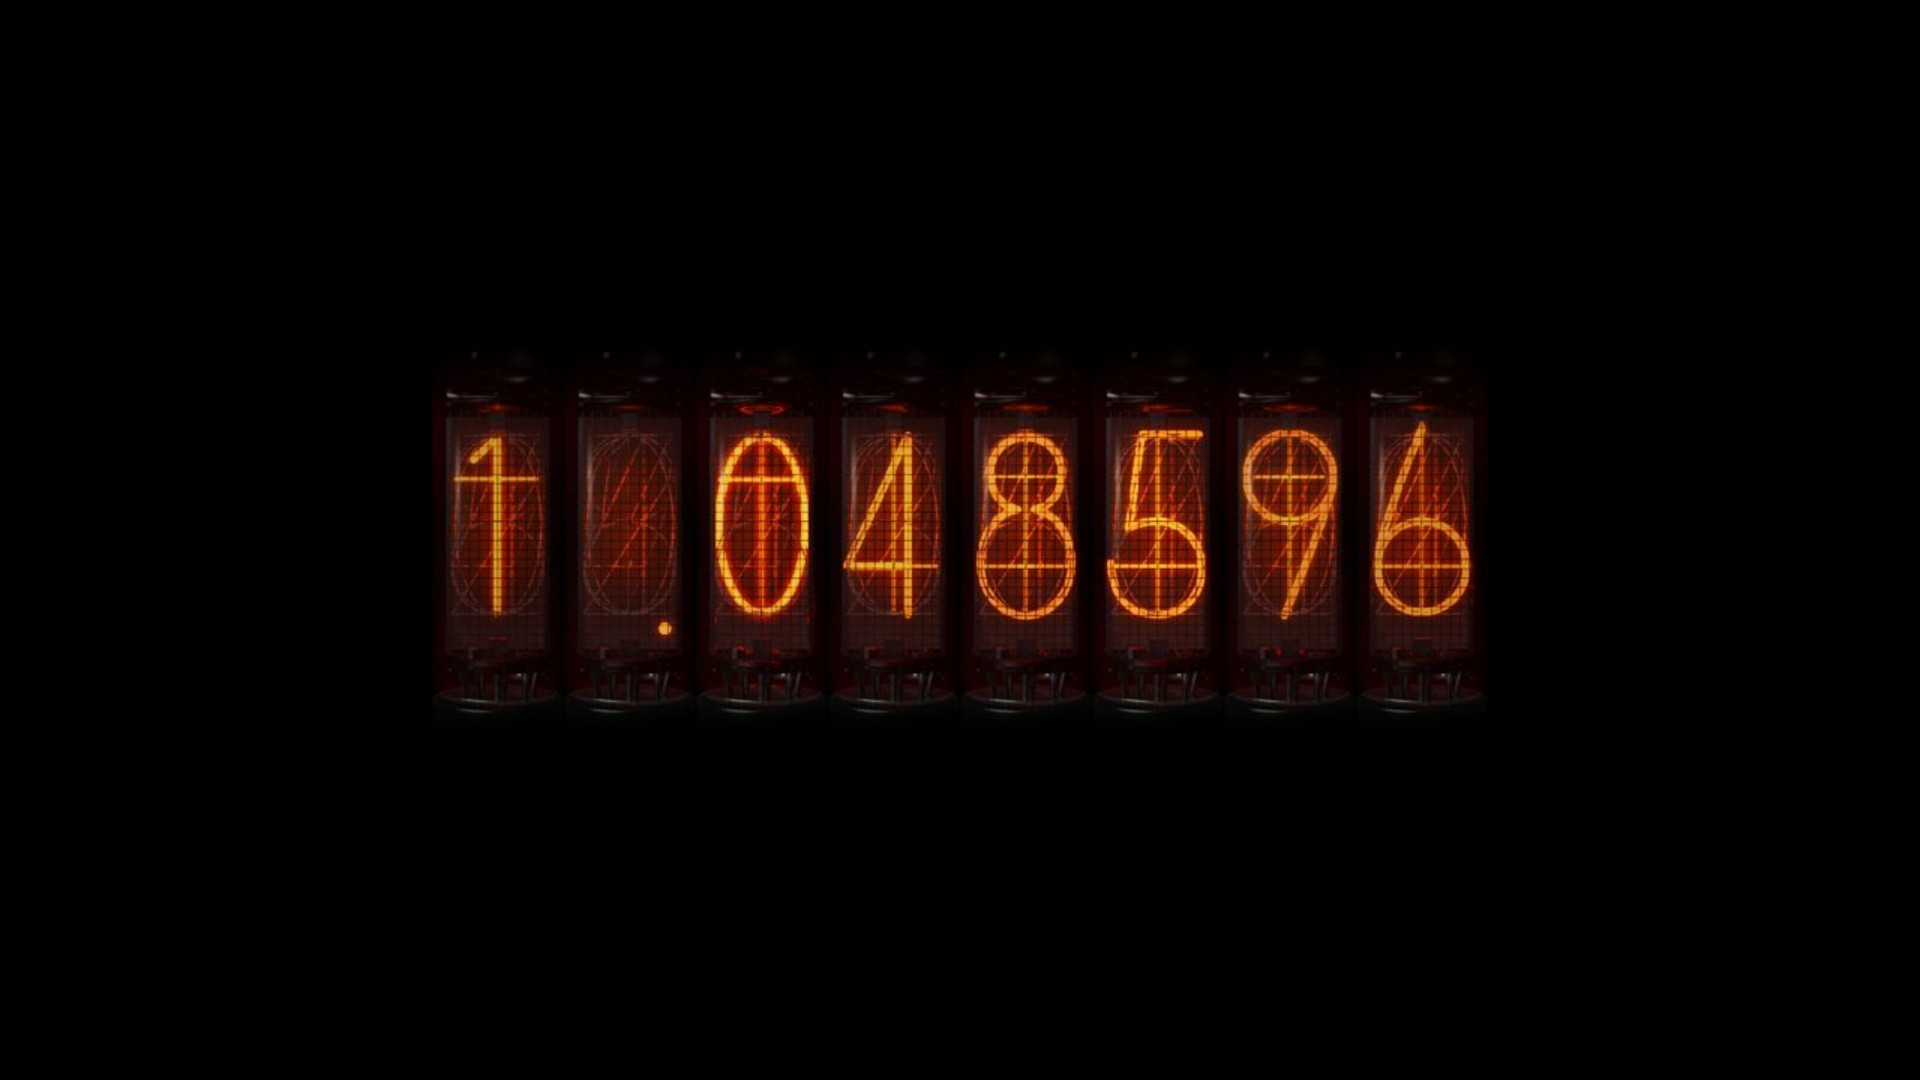 time travel anime nixie tubes steins;gate divergence meter numbers